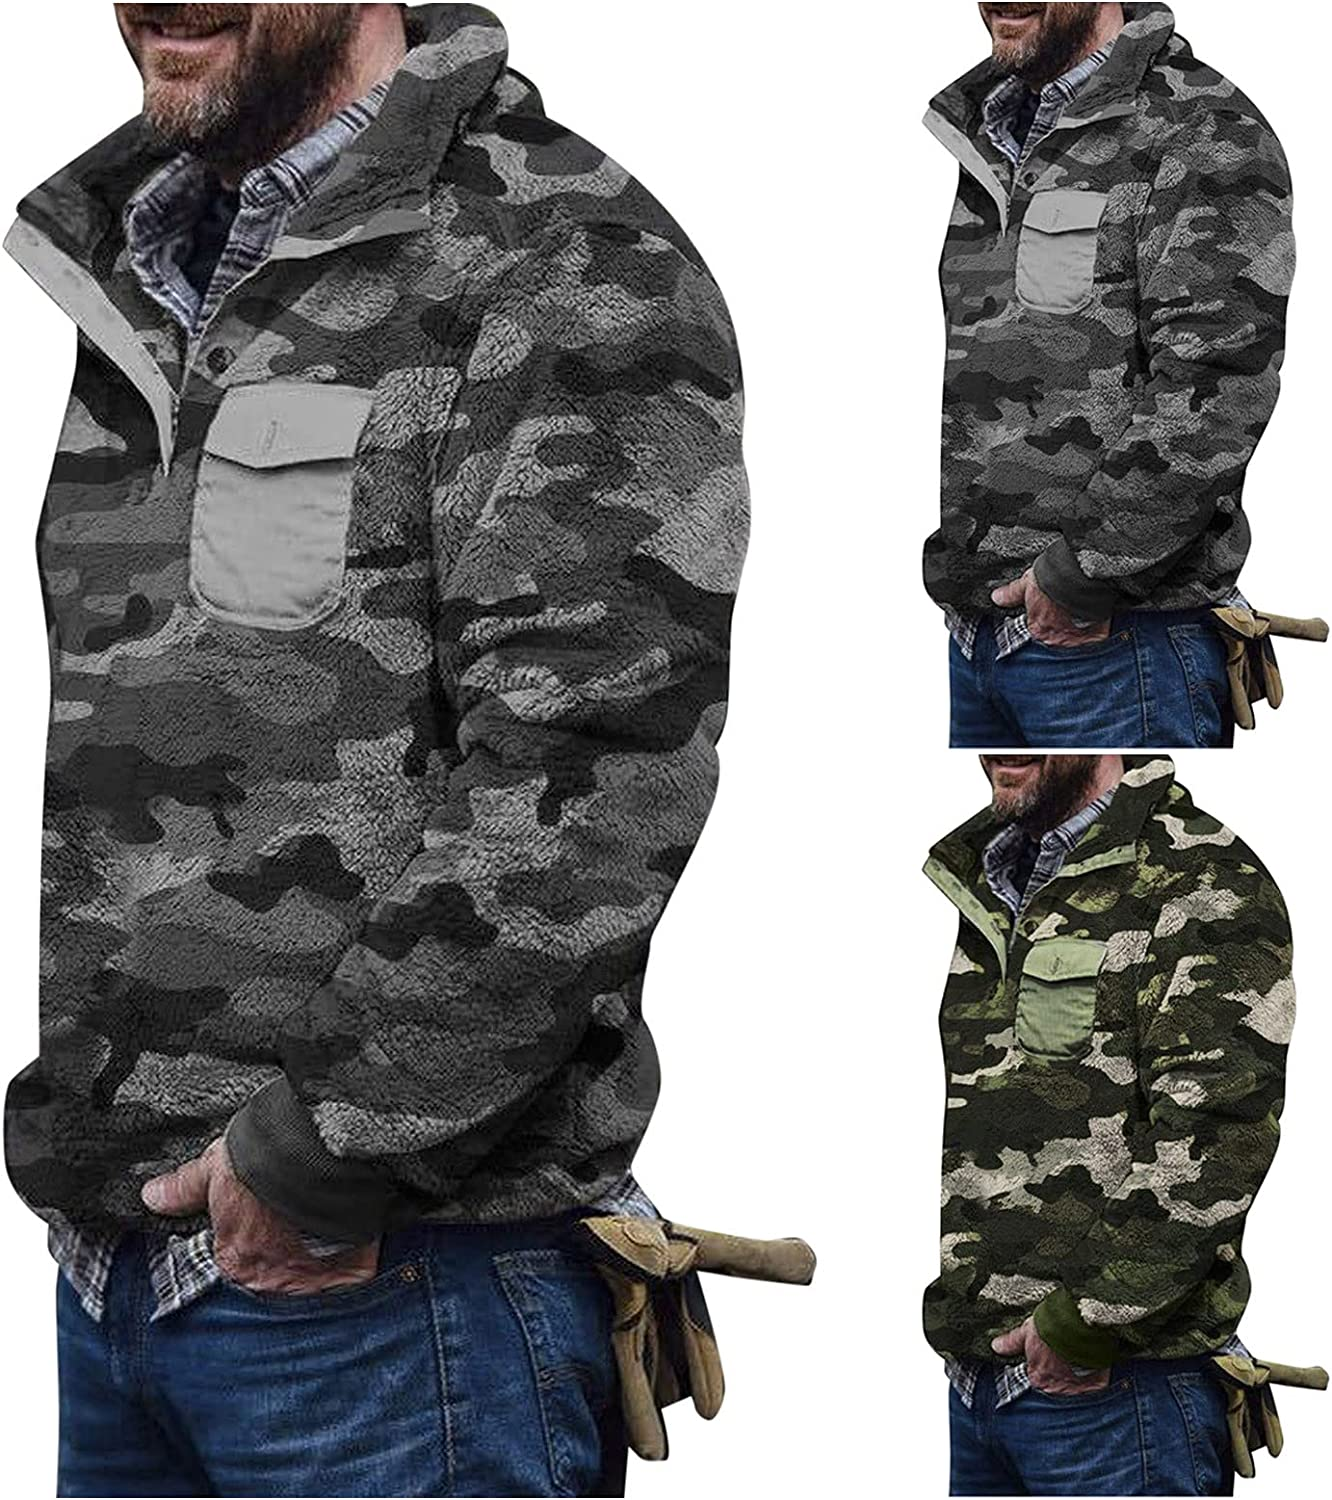 Men's Camouflage Turtleneck Plush Sweater Men's Button Pullover Plush Sweater with Pocket Winter Warm 2021